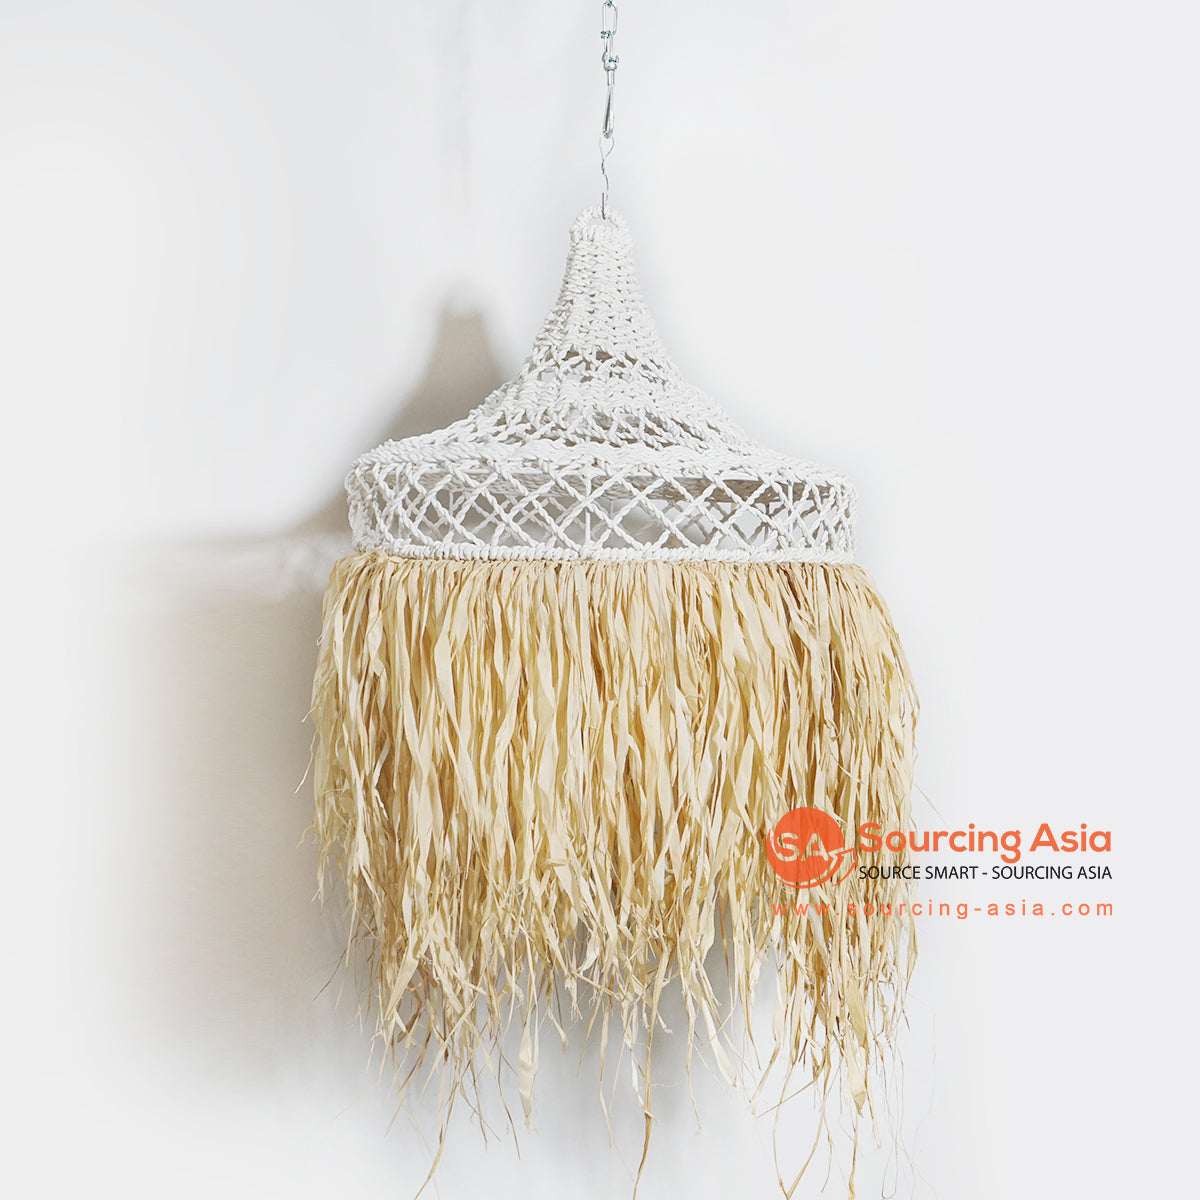 HBSC241-1 SEA GRASS HANGING LAMP